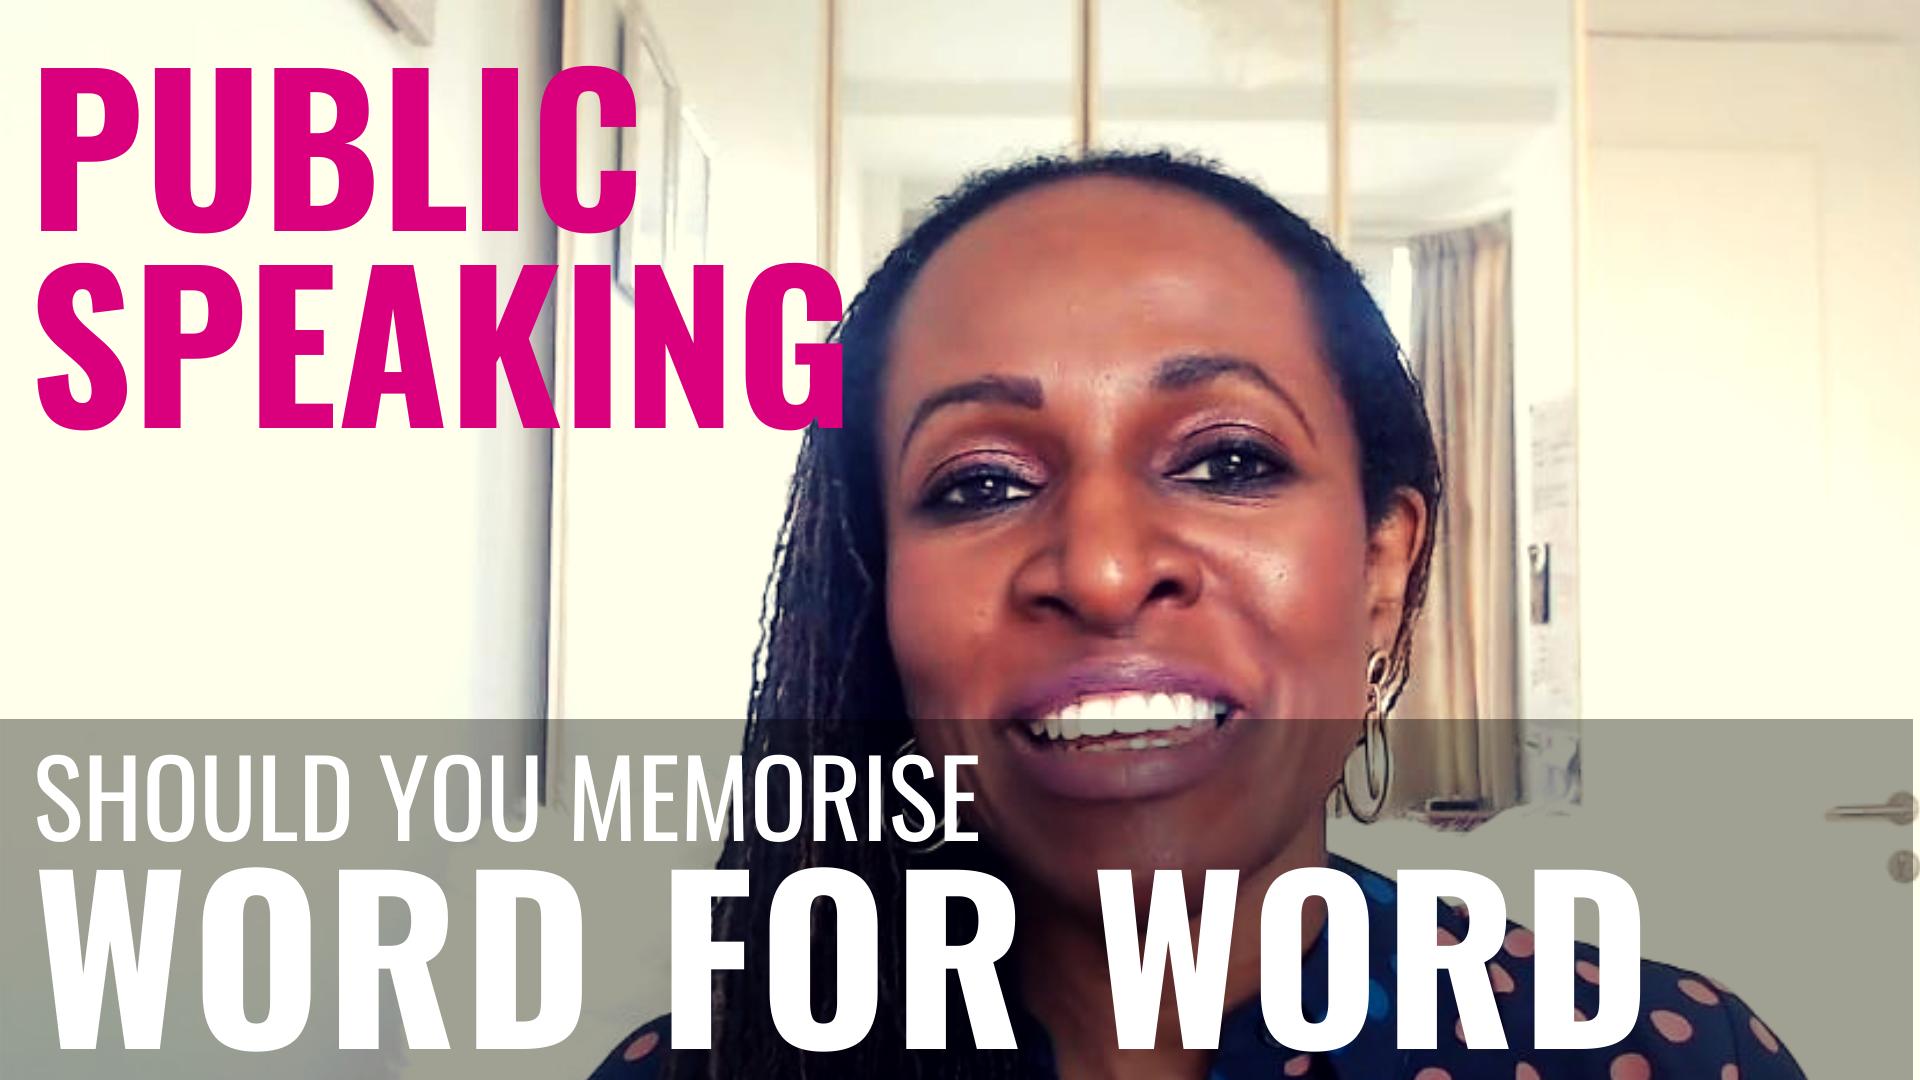 PUBLIC SPEAKING - Should you memorise WORD FOR WORD